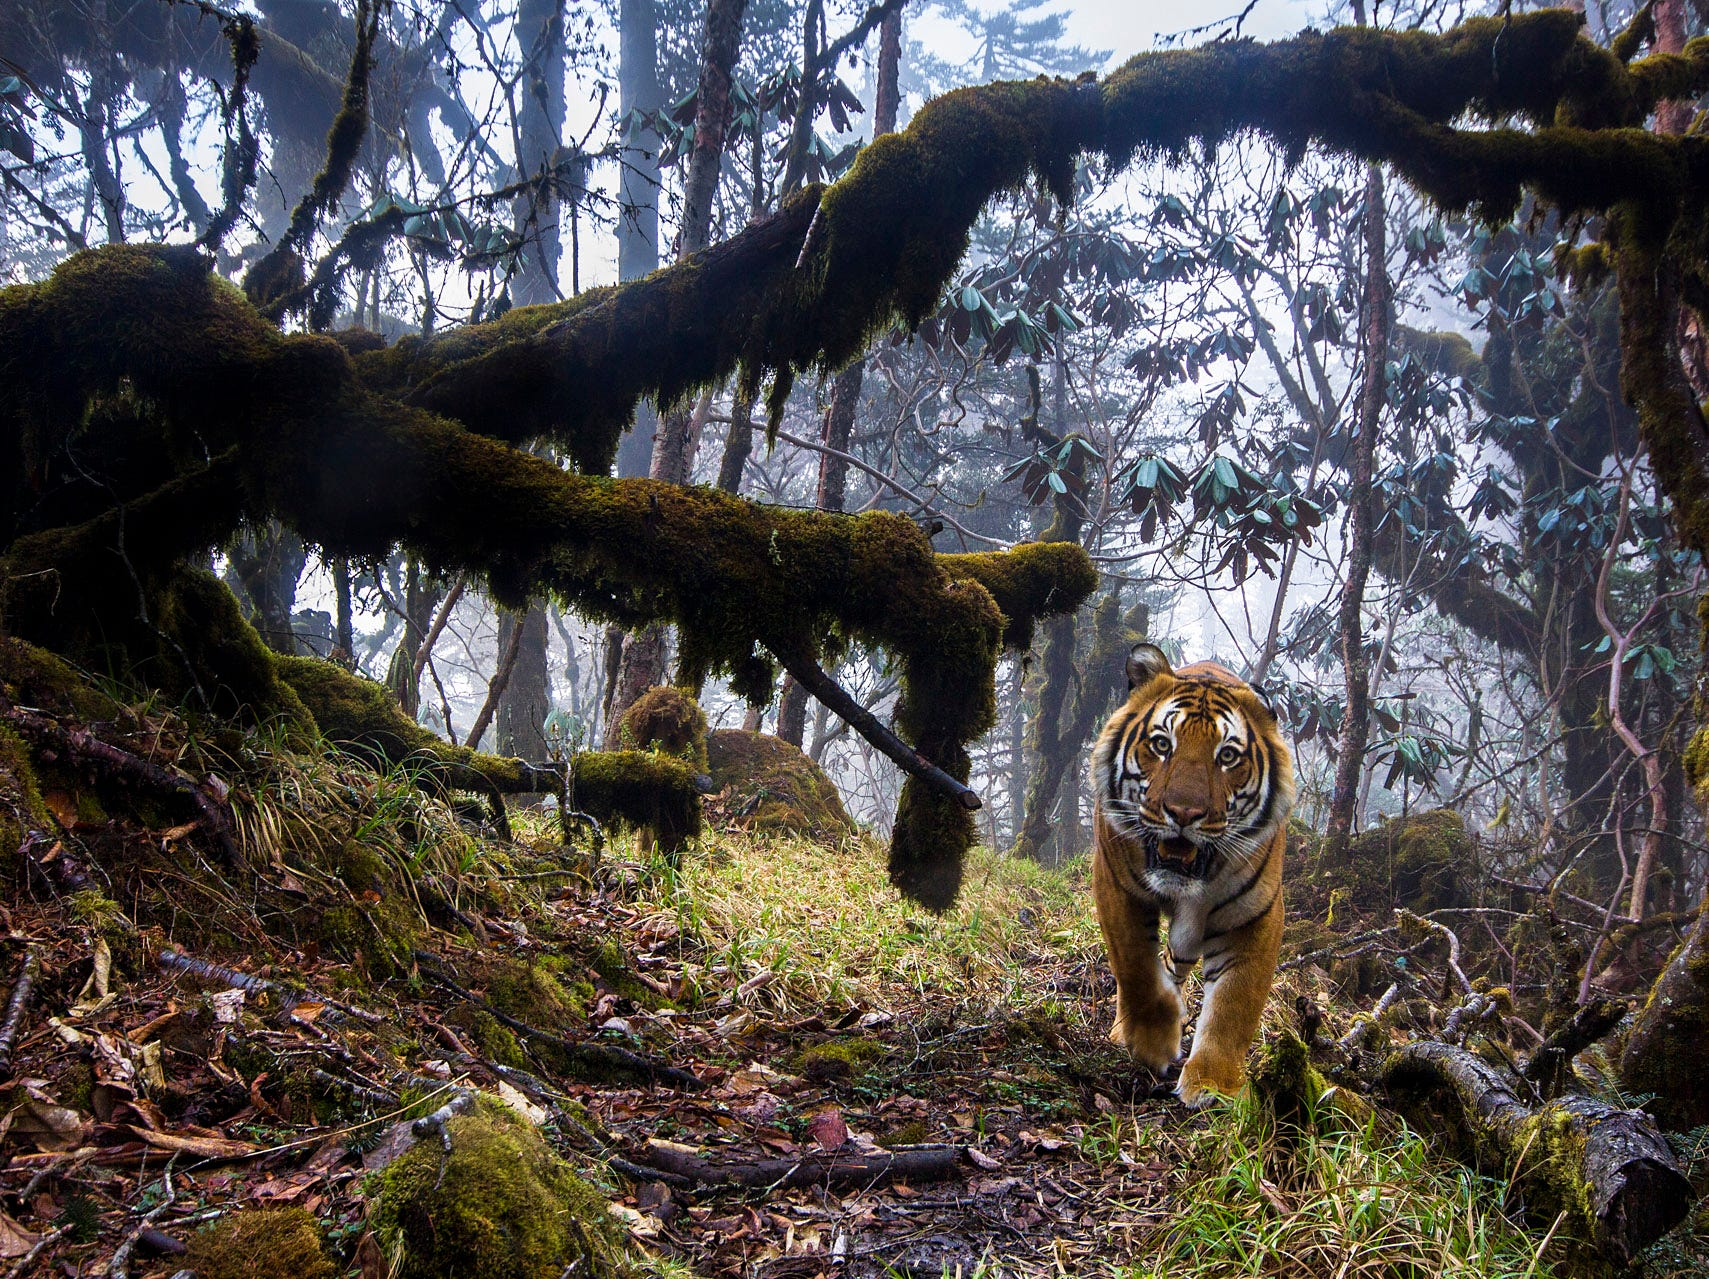 A bengal tiger shot in biological corridor 8 at 3546m of altitude, forest of Bhutan.